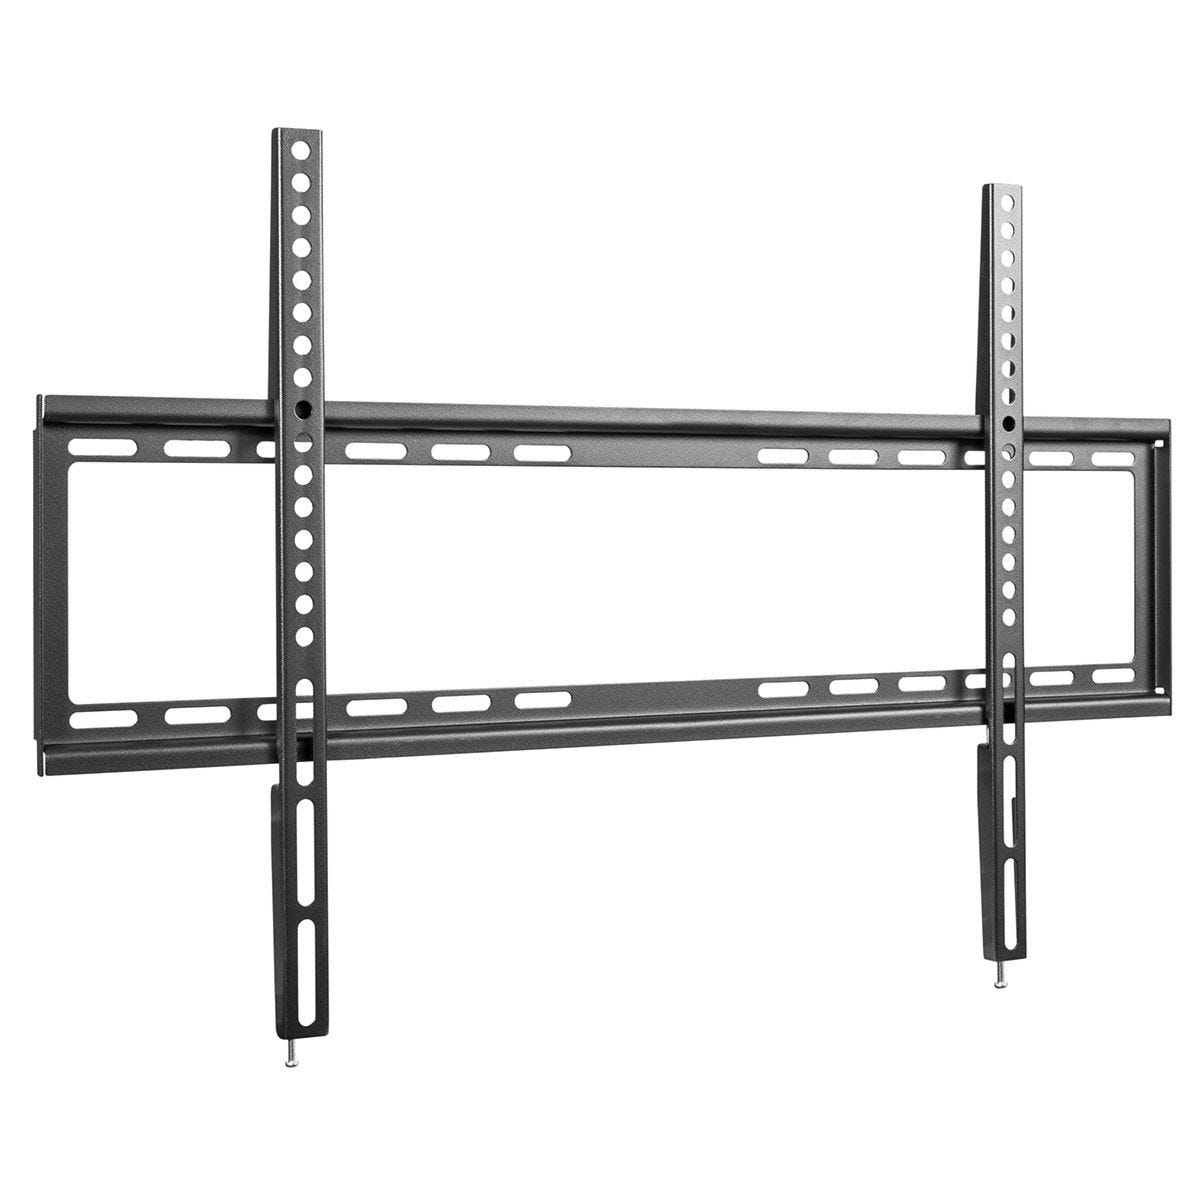 SBOX Fixed Wall Mount PLB-2264F for 37-70inch Flat Panel TV- Black